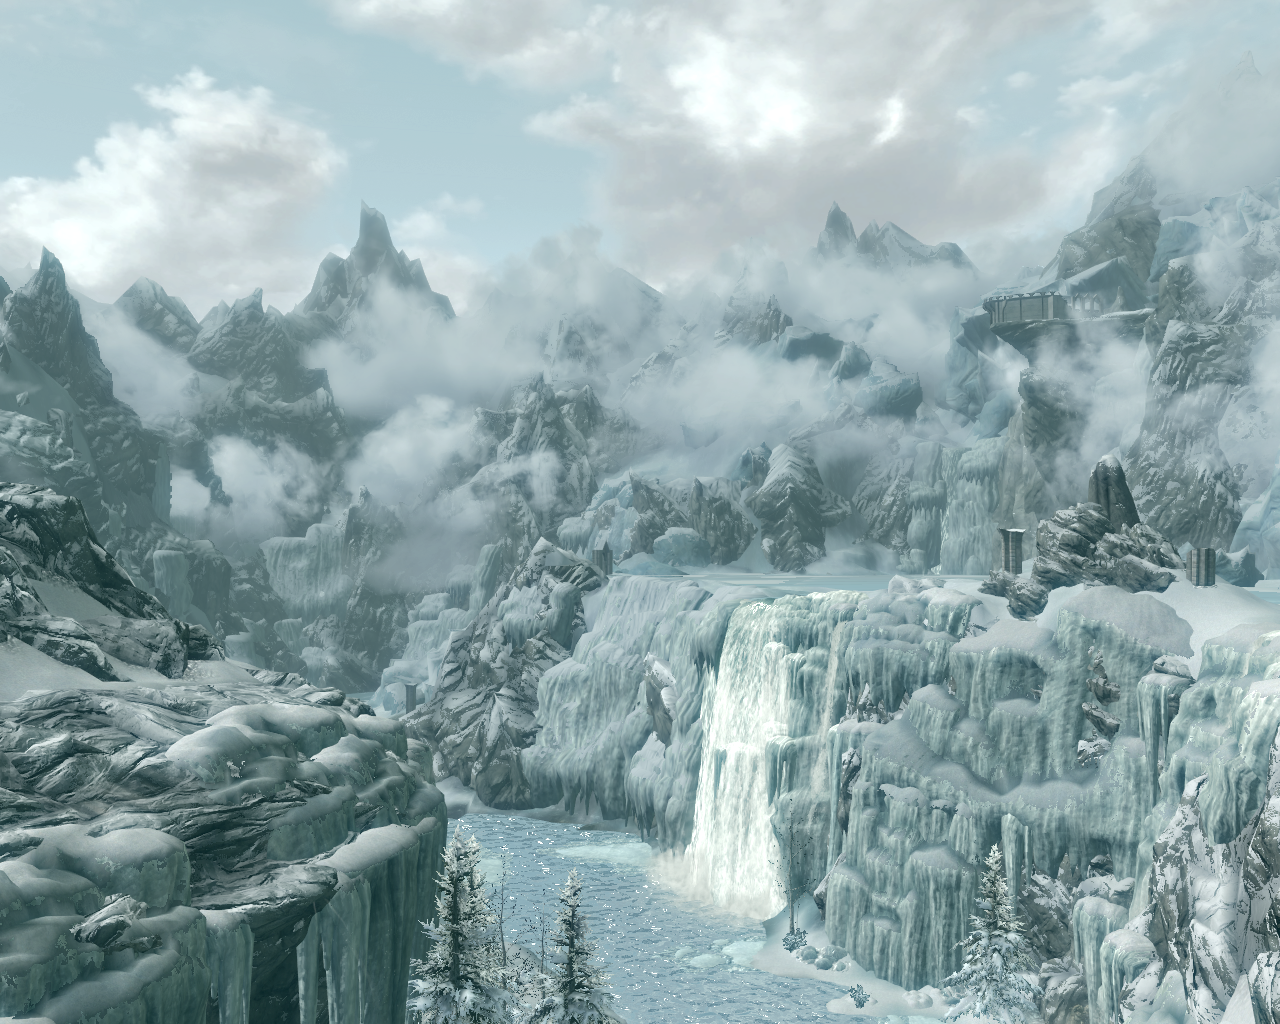 [Post Oficial] The Elder Scrolls V: Skyrim Edición Legendaria  - Página 25 Forgottenvale